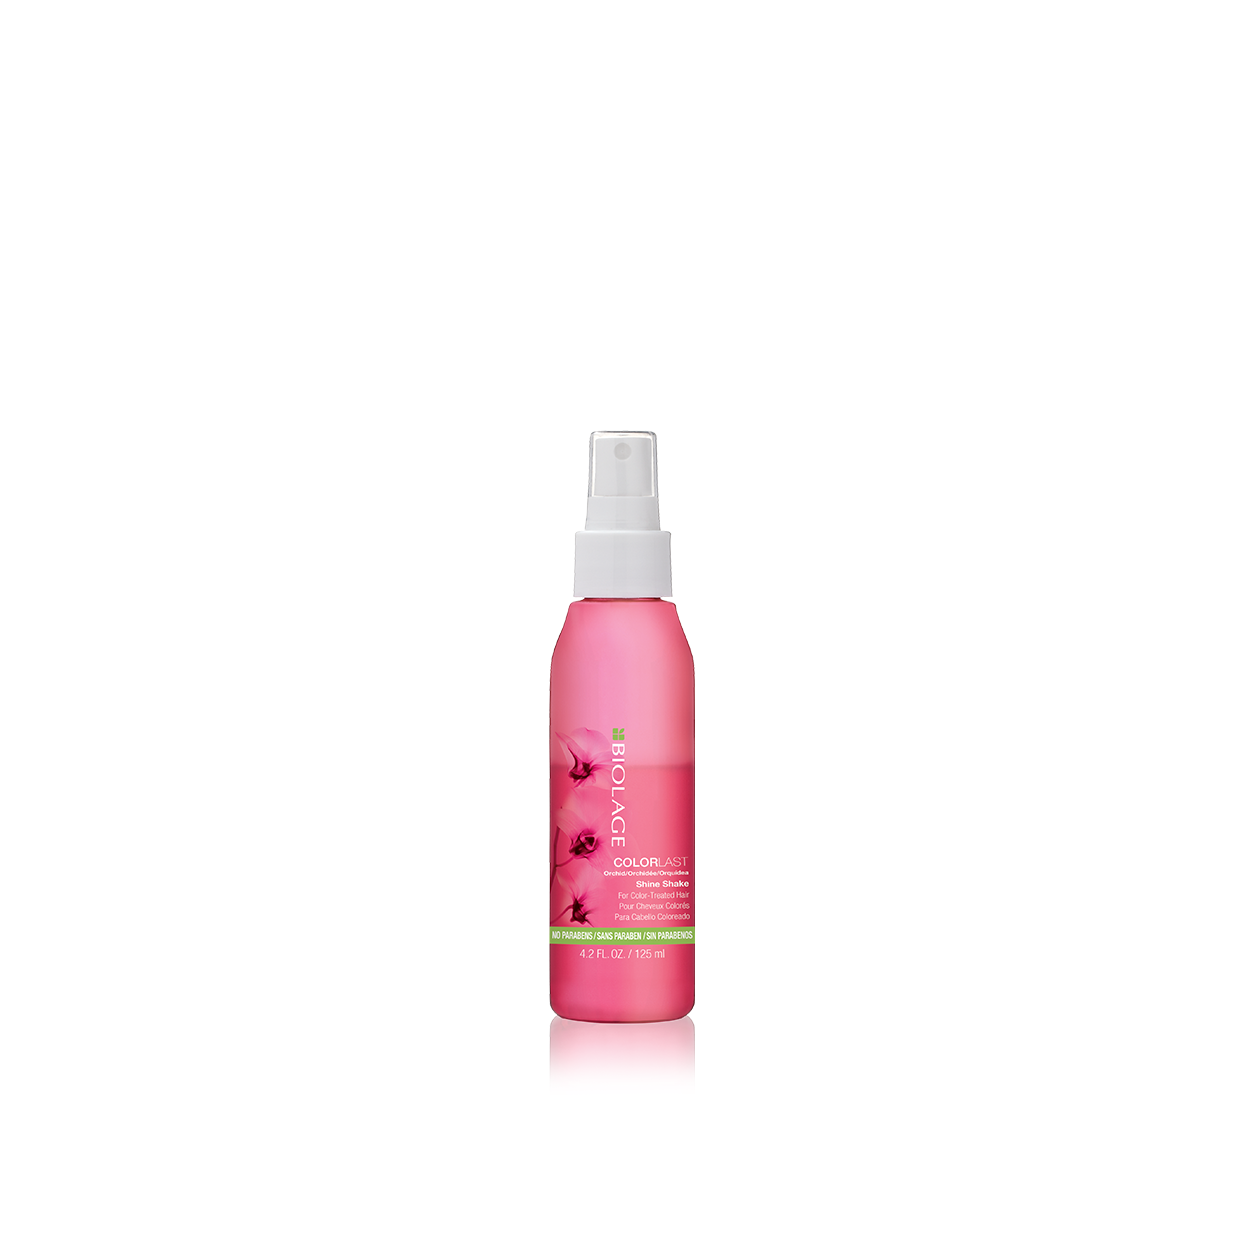 Biolage Colorlast Colour Protect Shine Spray for Coloured Hair